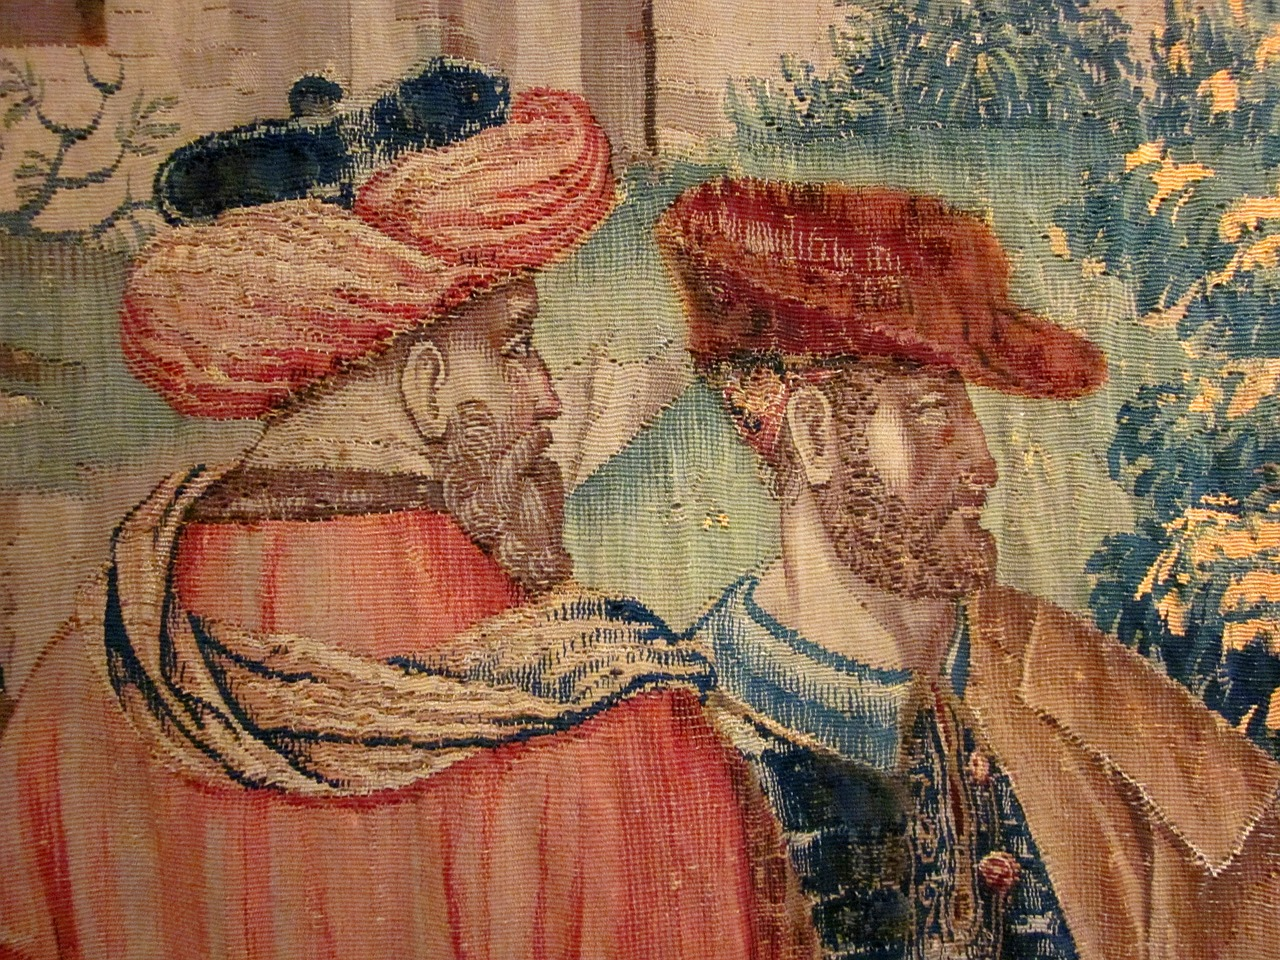 tapestry chateau de langeais renaissance free photo